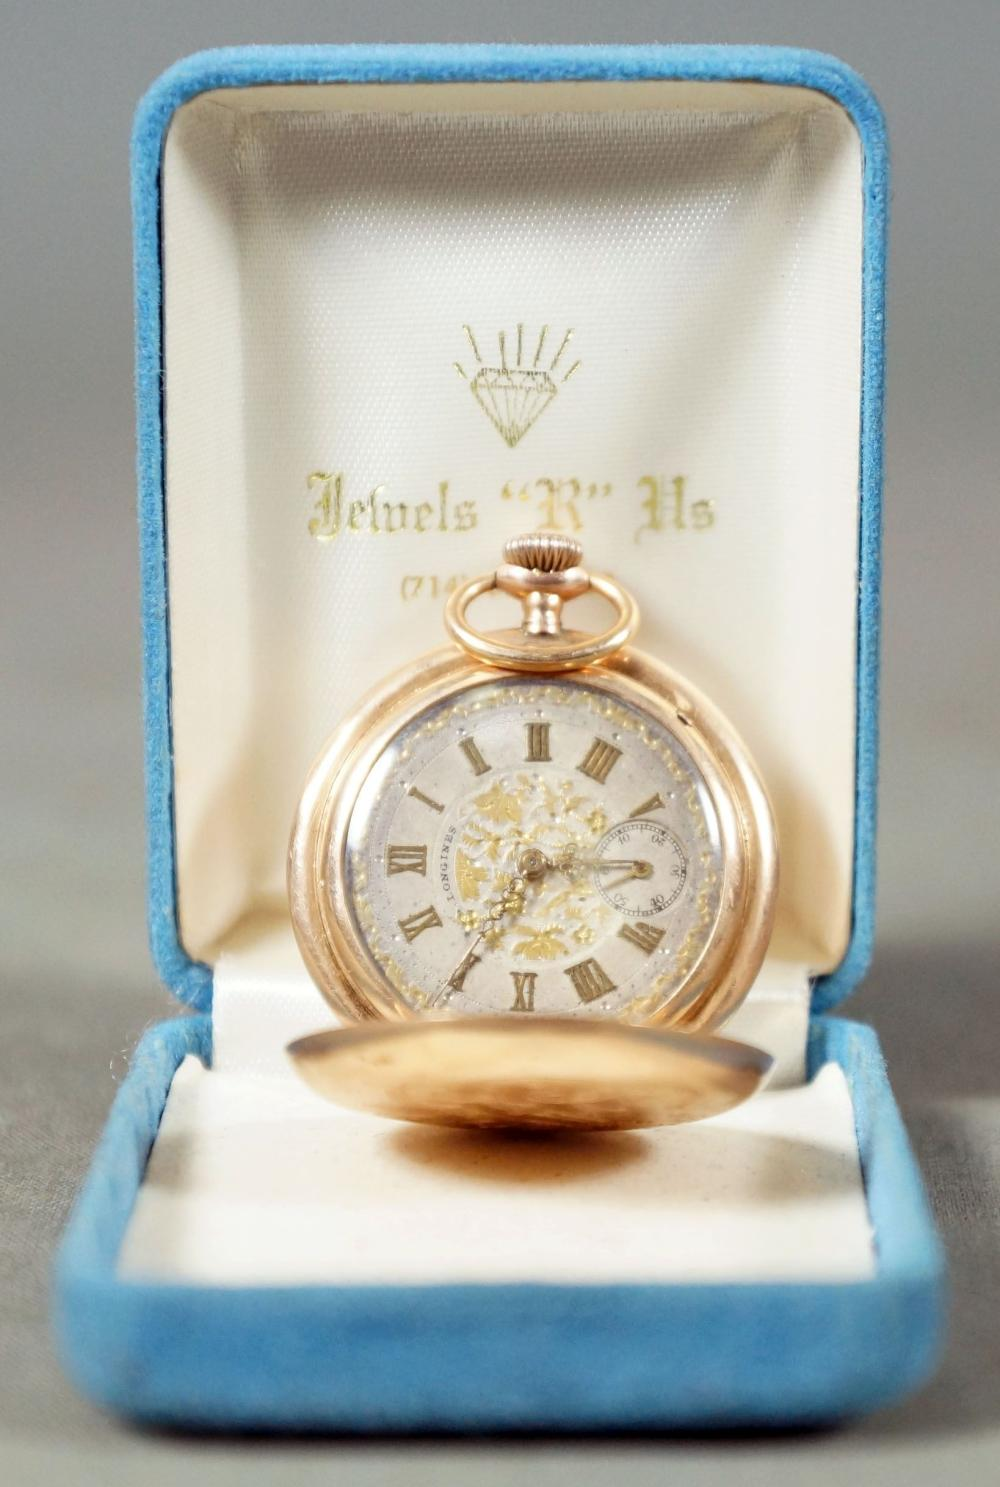 Jewels R Us 14K Gold Pocket Watch